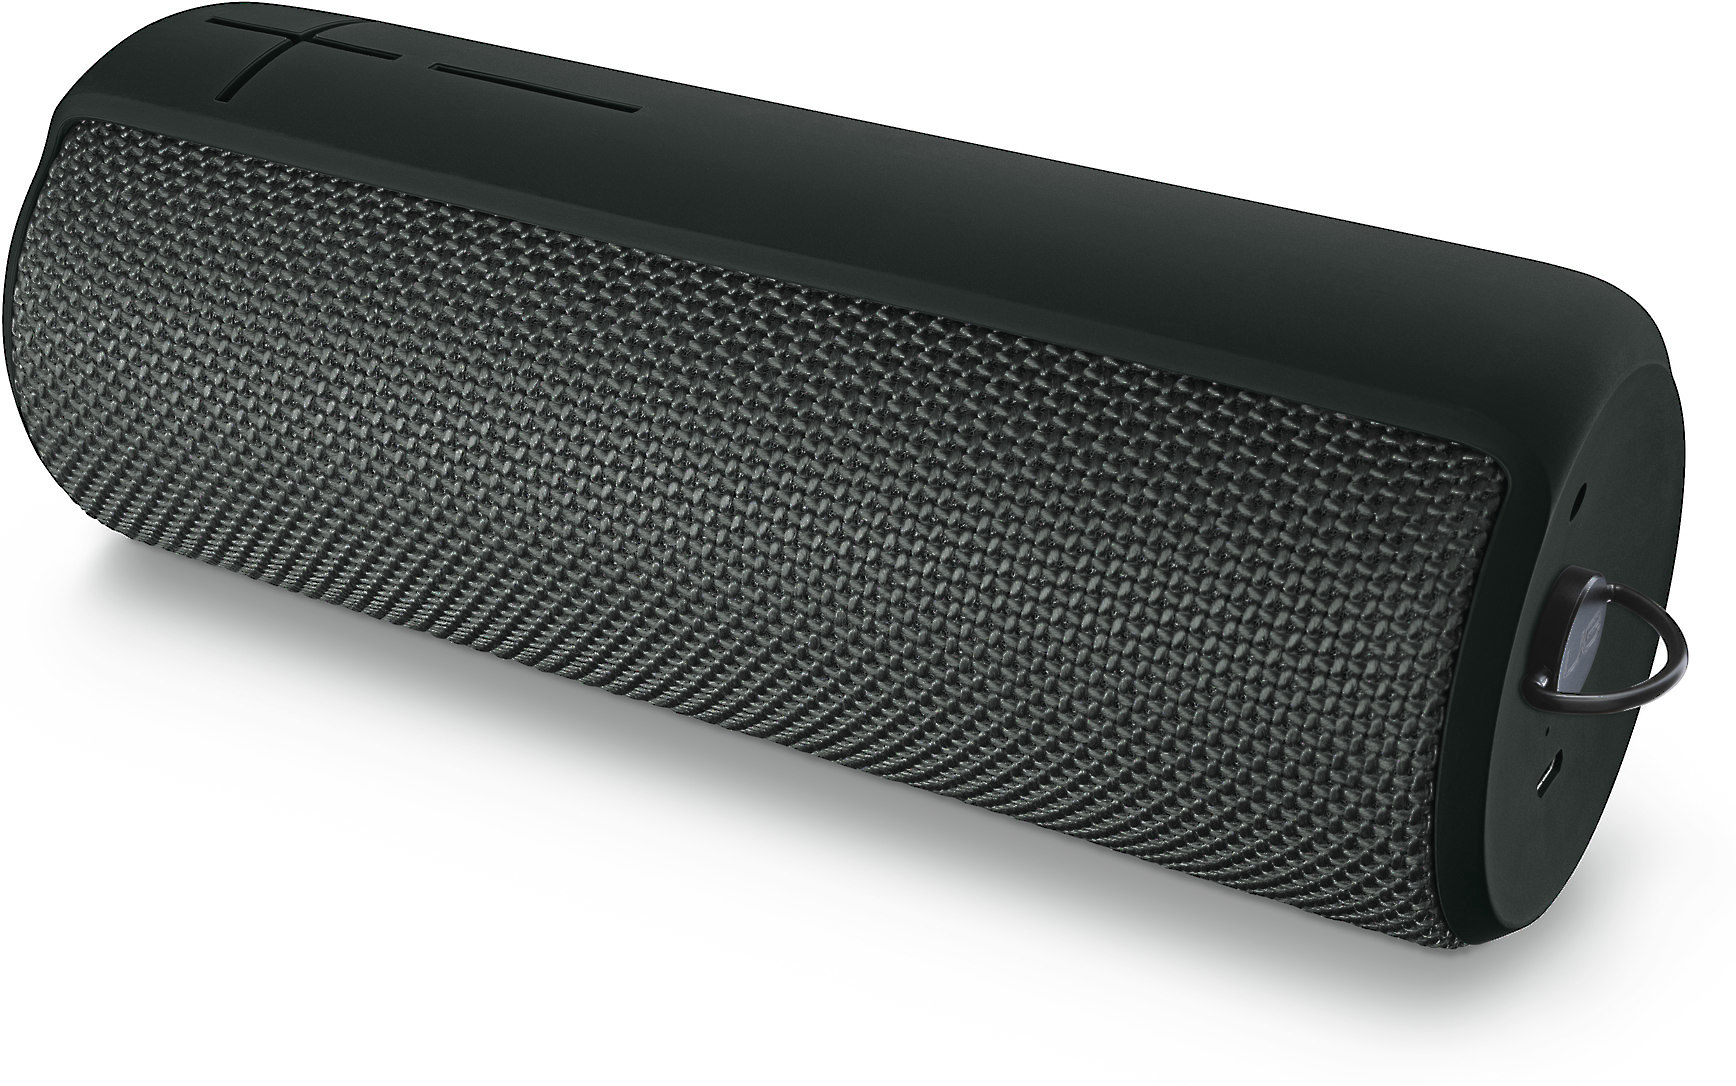 0886b3ab UE BOOM (Factory Refurbished) Portable Bluetooth® speaker at Crutchfield.com